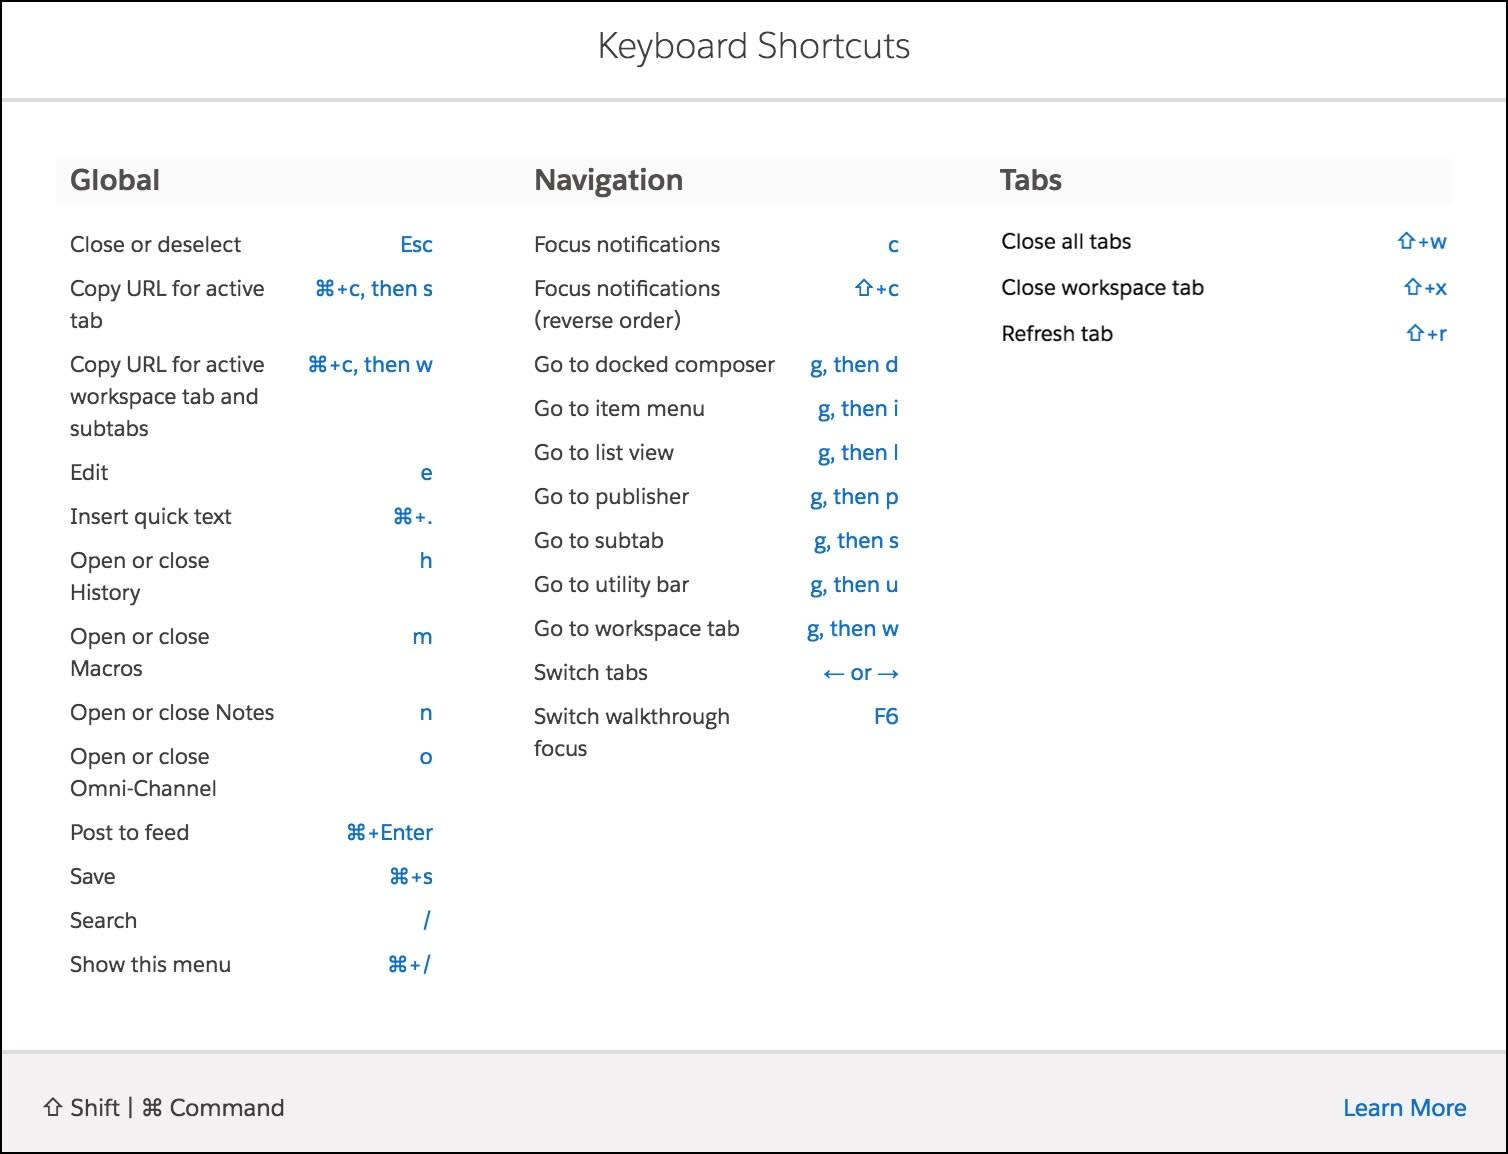 Keyboard shortcut window showing all the available shortcuts